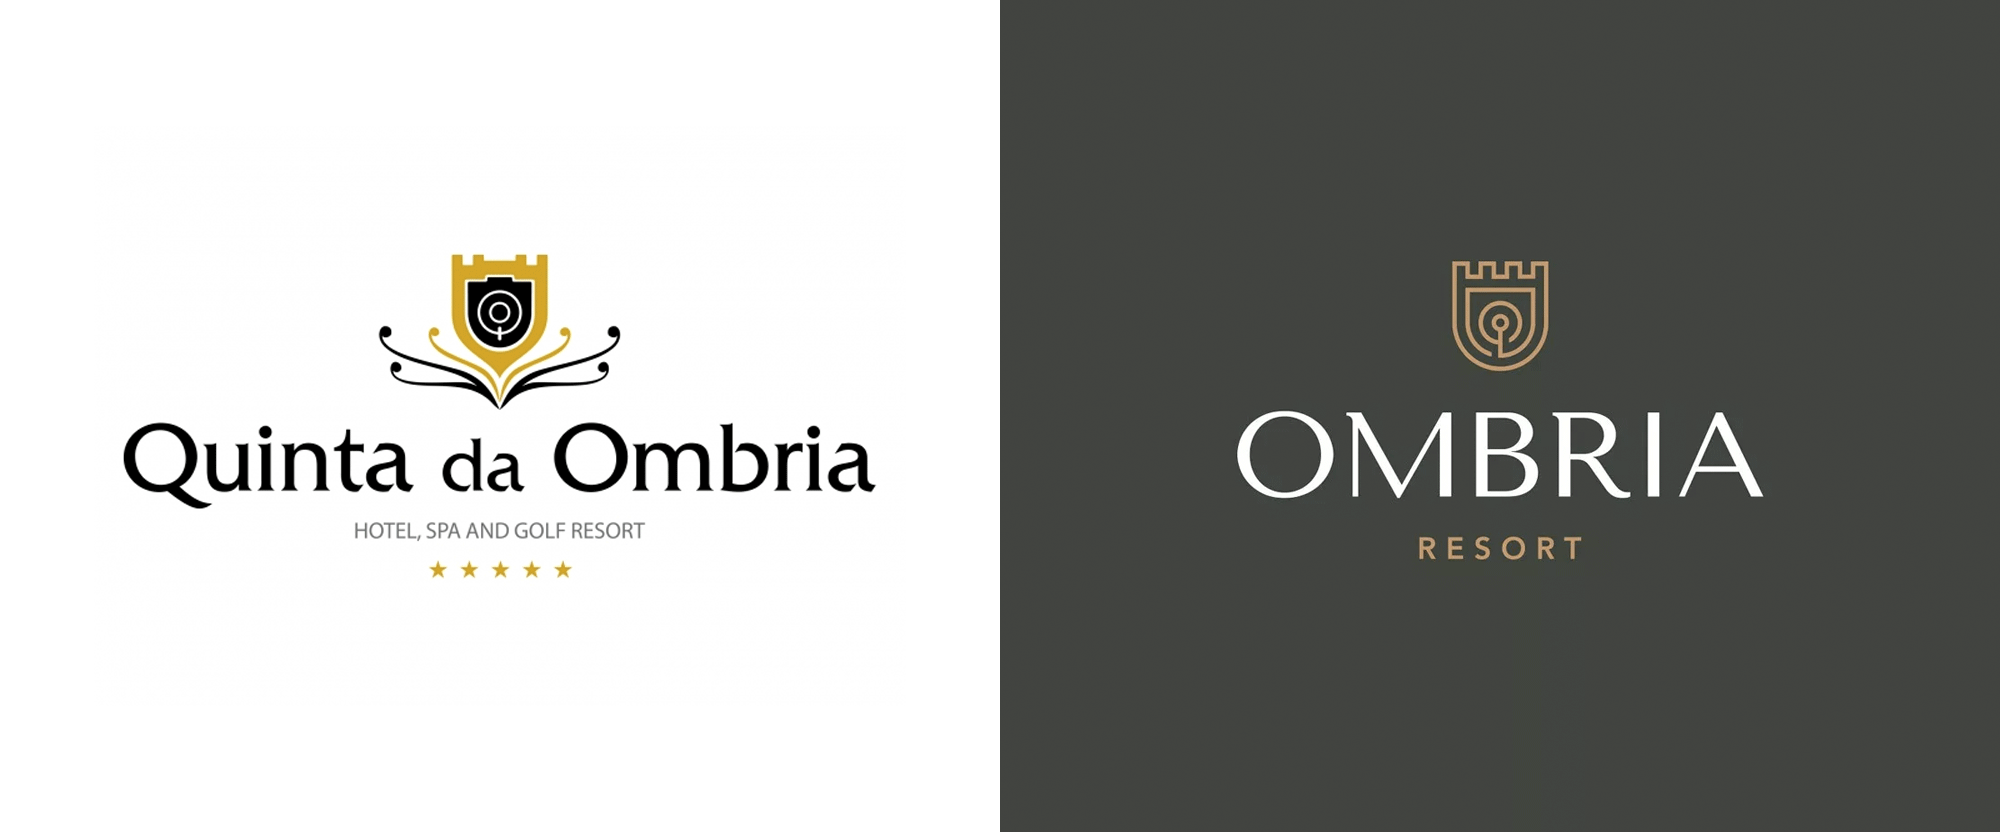 New Logo and Identity for Ombria Resort by Triplesky